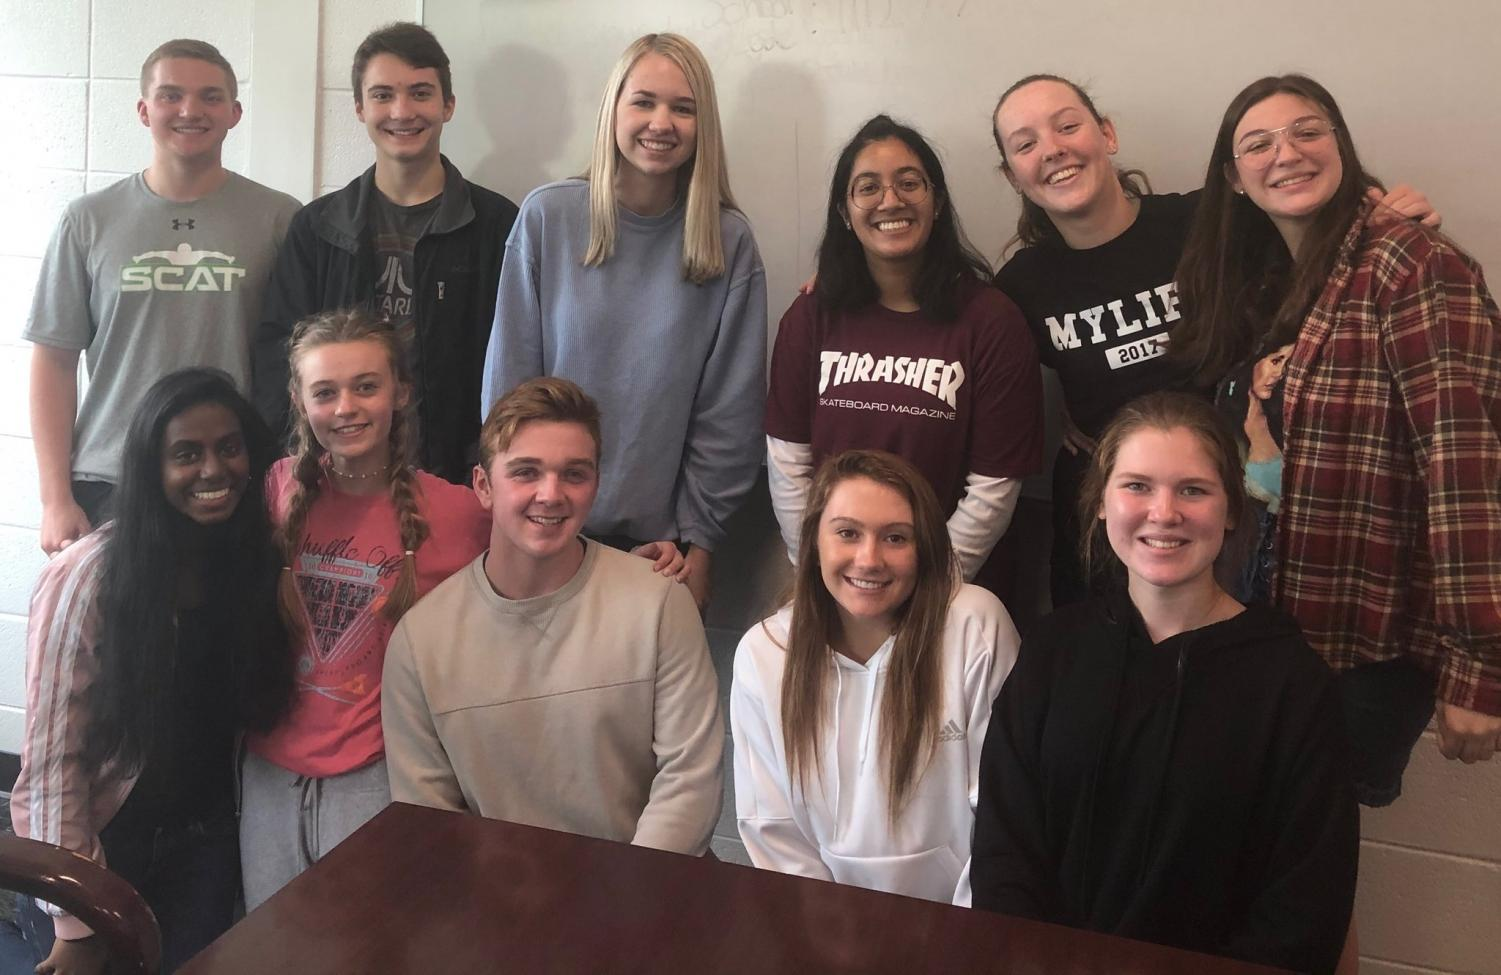 Twelve Starr's Mill students have moved on to the state level GHP competition. Top row left to right: Gabe Rogers, Henry Ravita, Ashley Callaghan, Ishani Peddi, Emily Hawkins, and Annabella Ellis. Bottom row left to right: Teja Pulagam, Amanda Robison, Noah Ellis, Jolie Lester, and Natalie Robichaux. (Not pictured Will Knowlton).